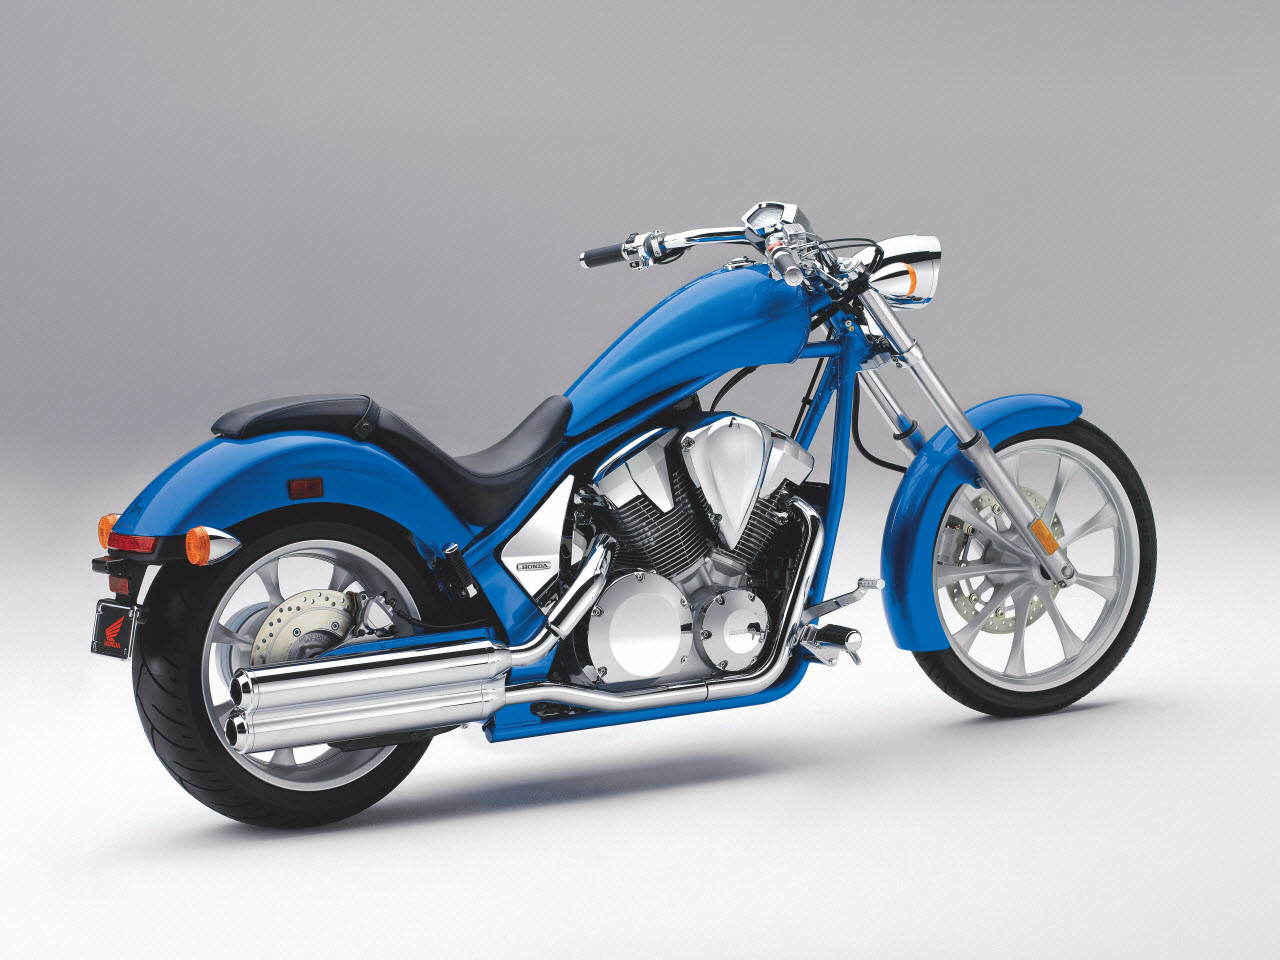 The 2010 Honda Fury Chopper Wallpapers HD Wallpapers 1280x960